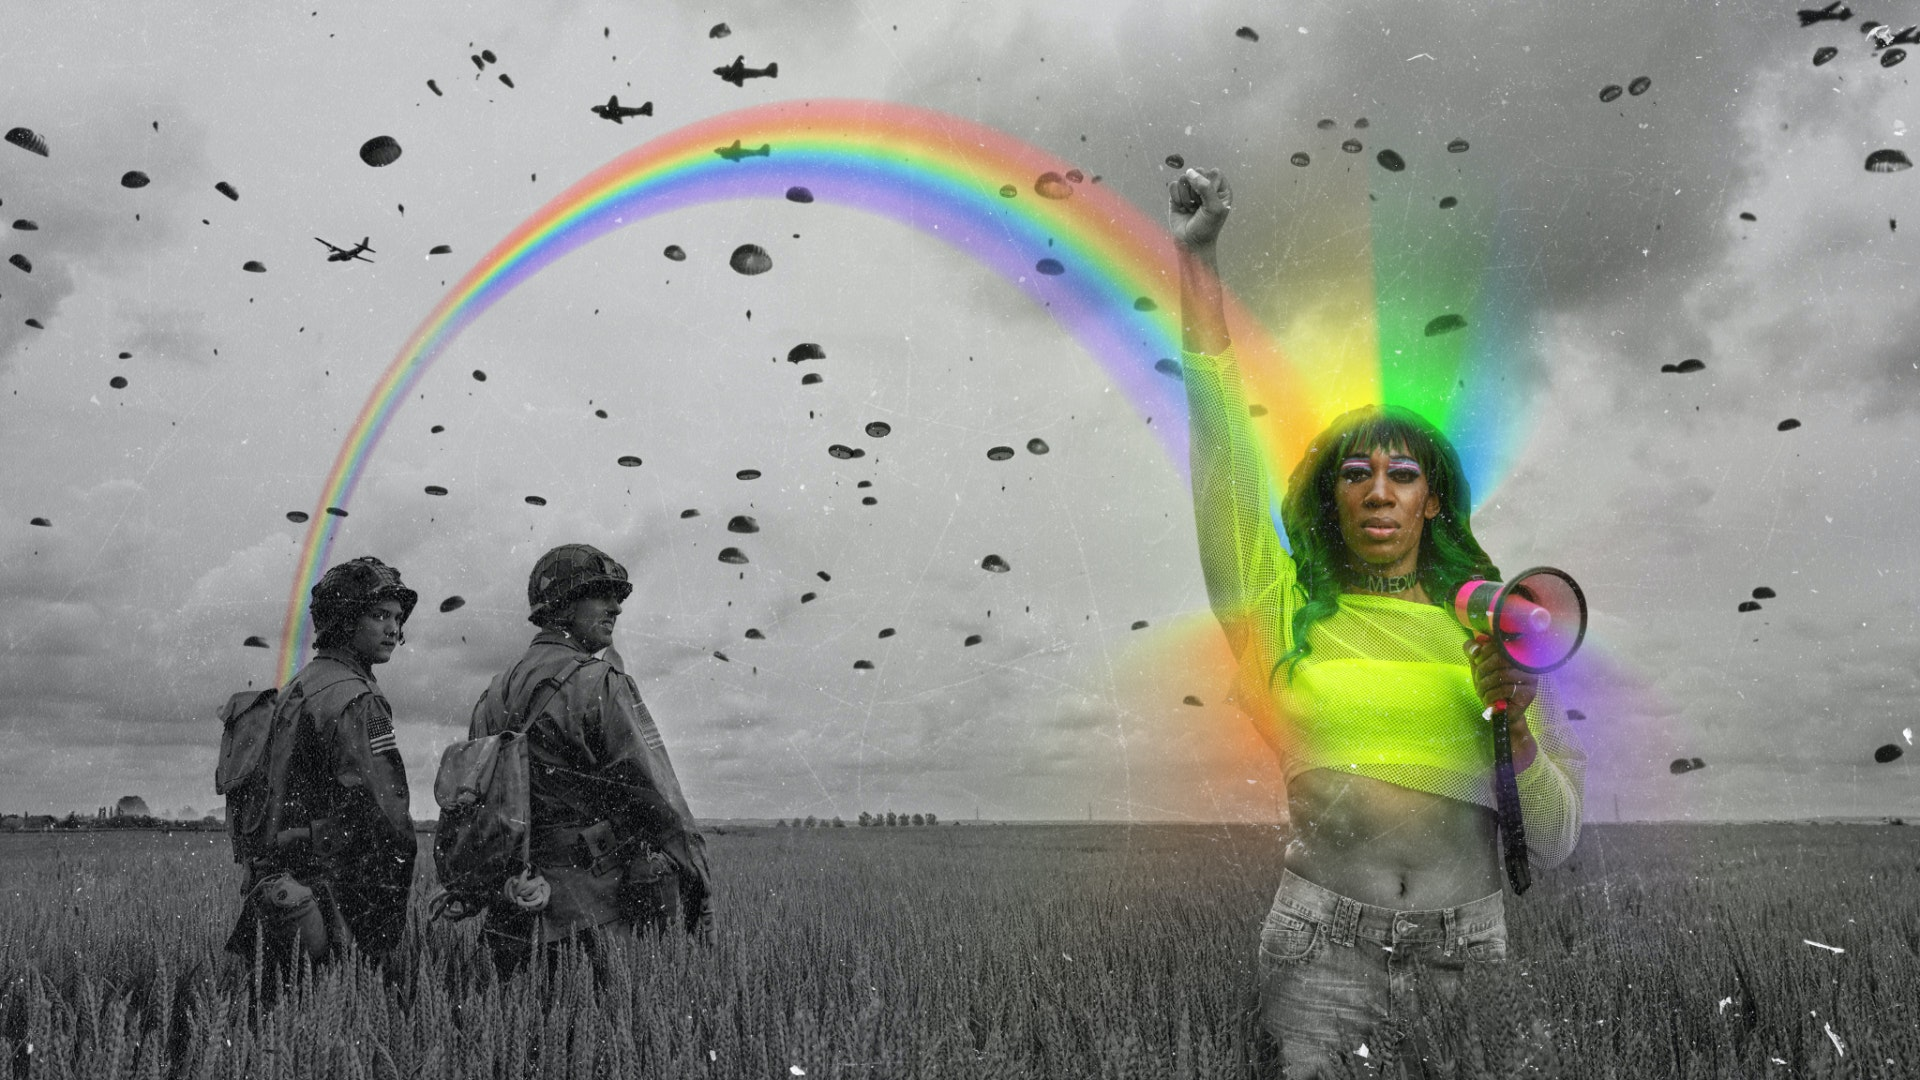 Ep. 1271 - For Biden, Being Transgender Is The New Storming The Beaches of Normandy